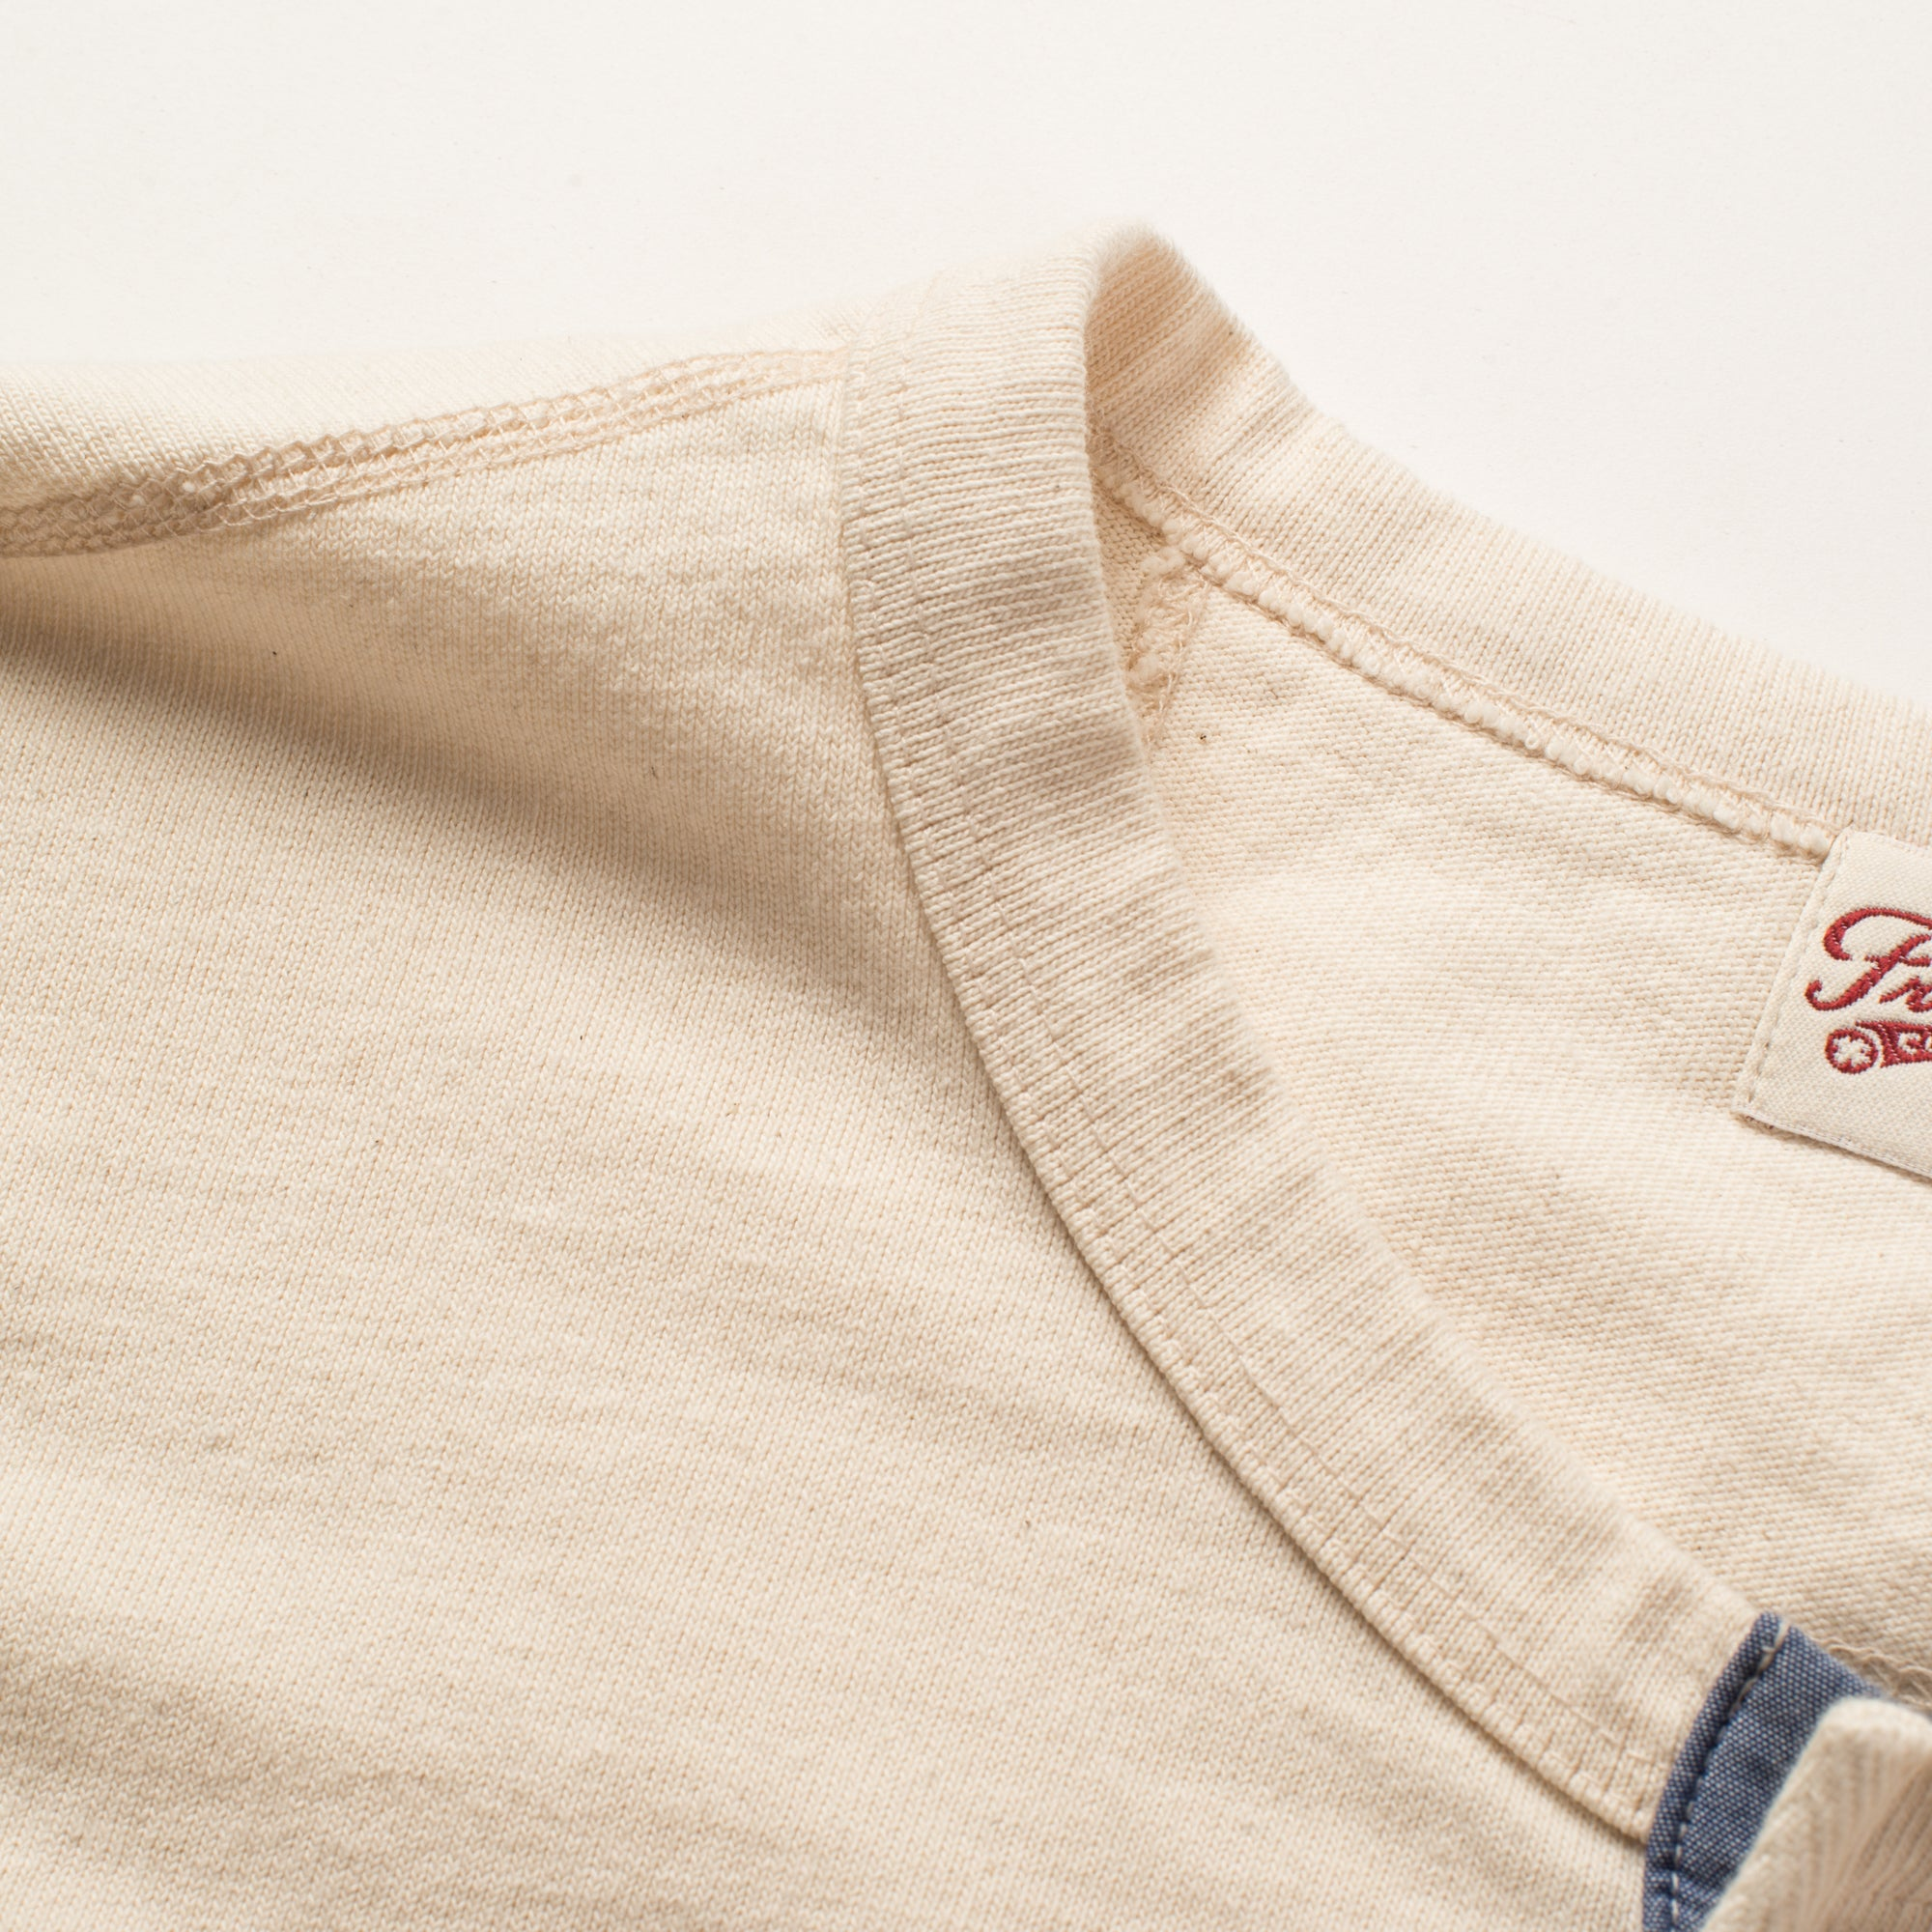 13 OUNCE HENLEY NATURAL Collar